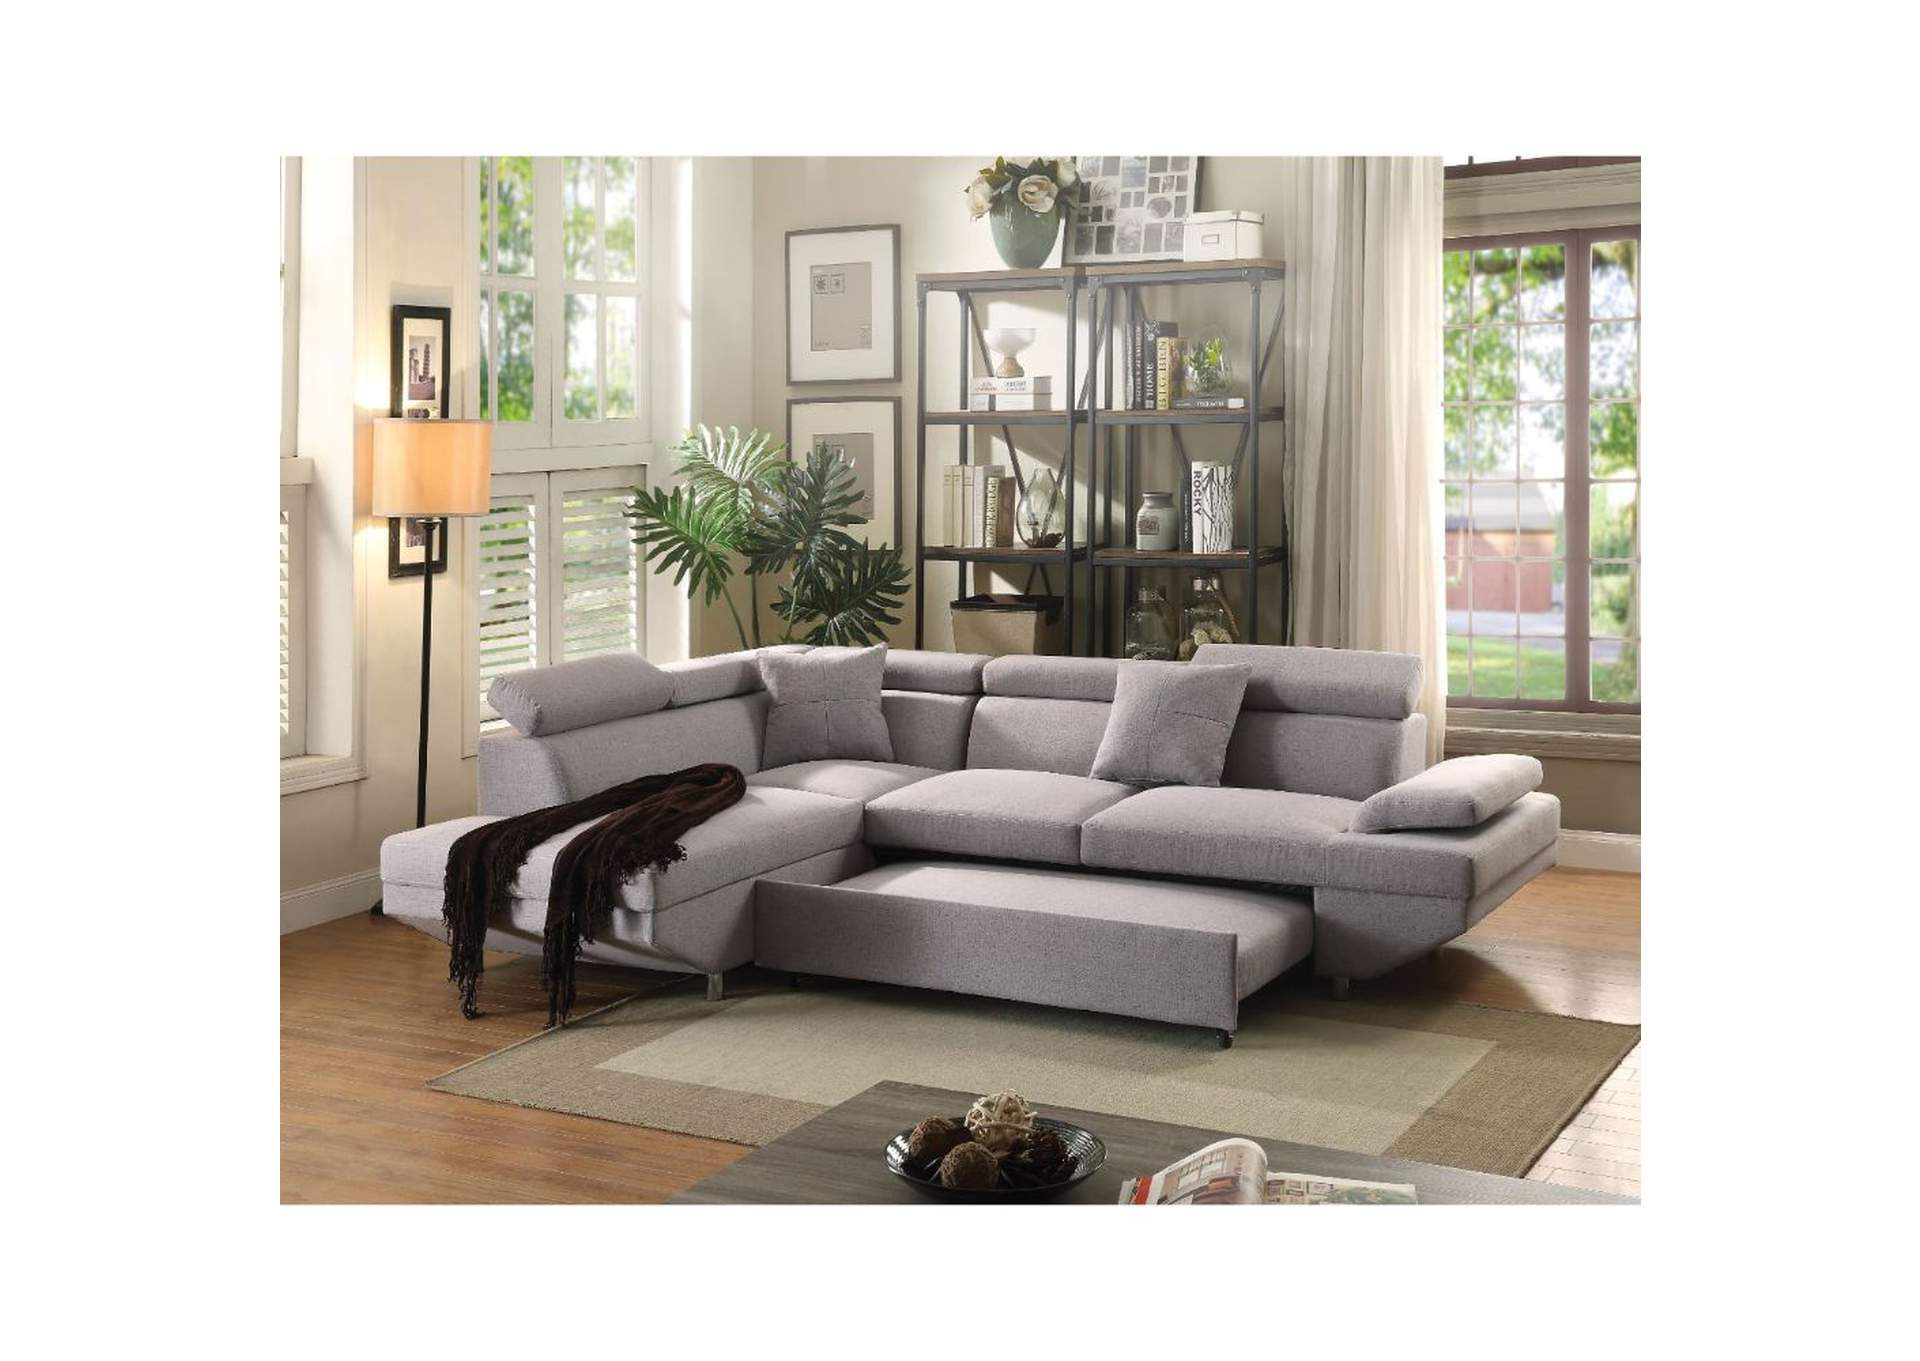 Jemima Gray Fabric Sectional Sofa,Acme